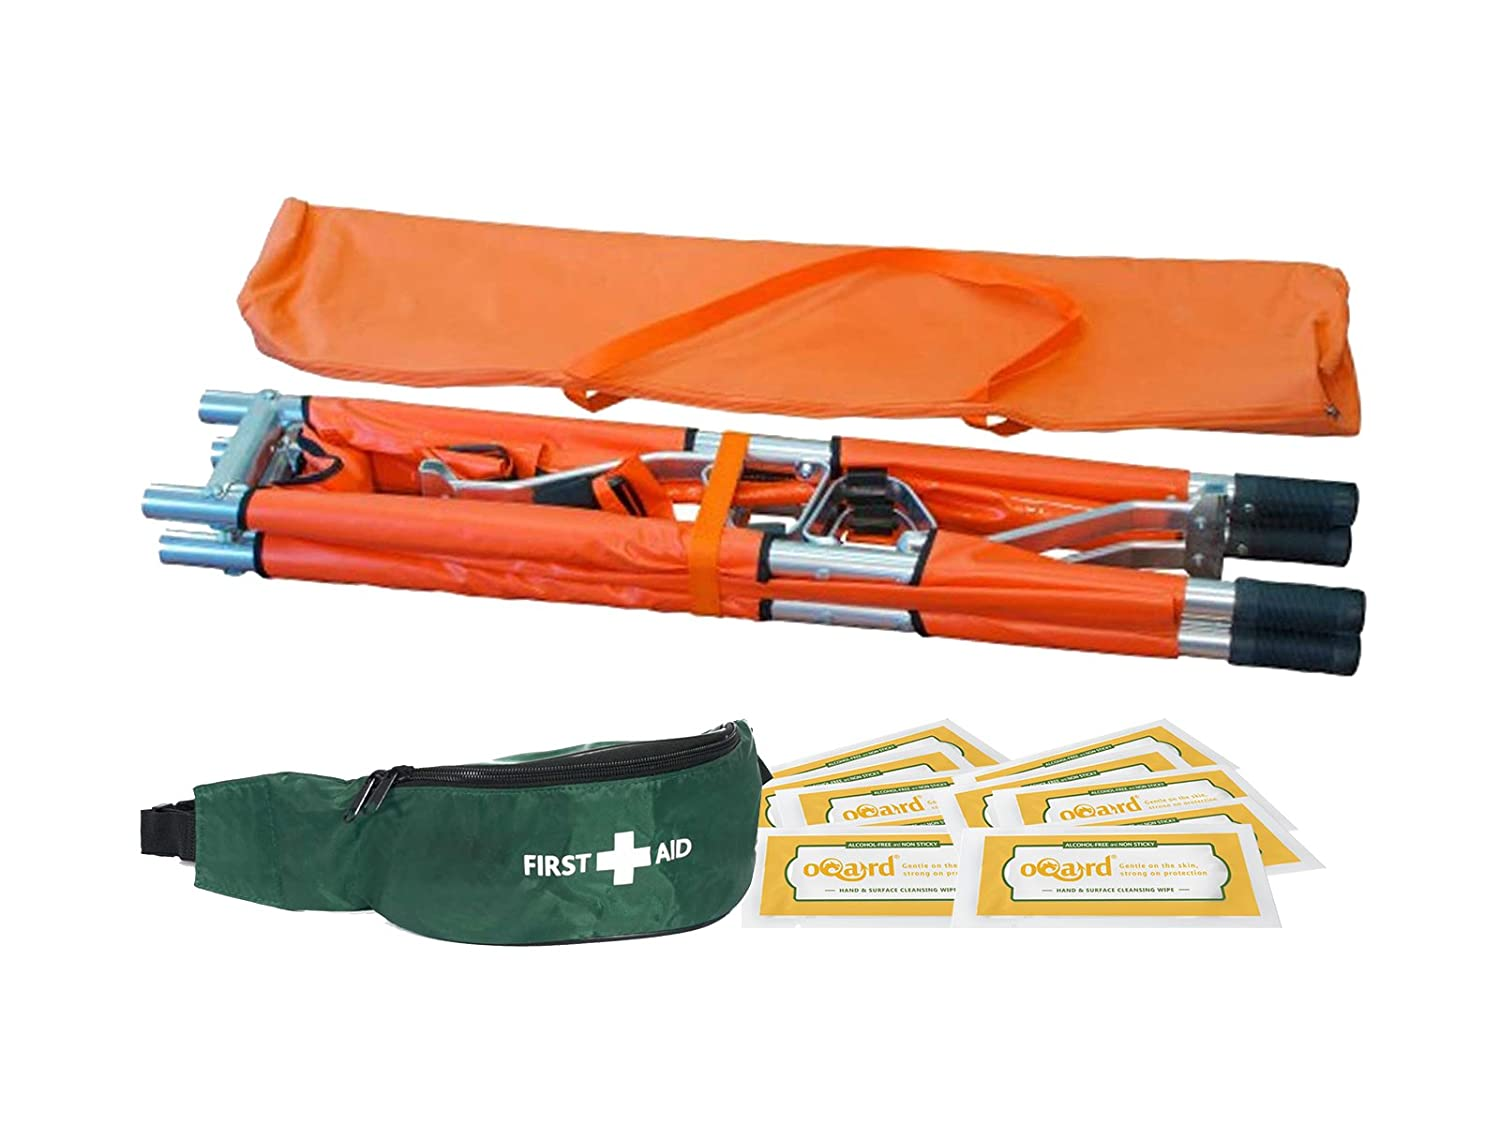 Blue Lion Two-Fold Stretcher with First Aid Bum Bag and Oqard Cleansing Wipes Muzamedical